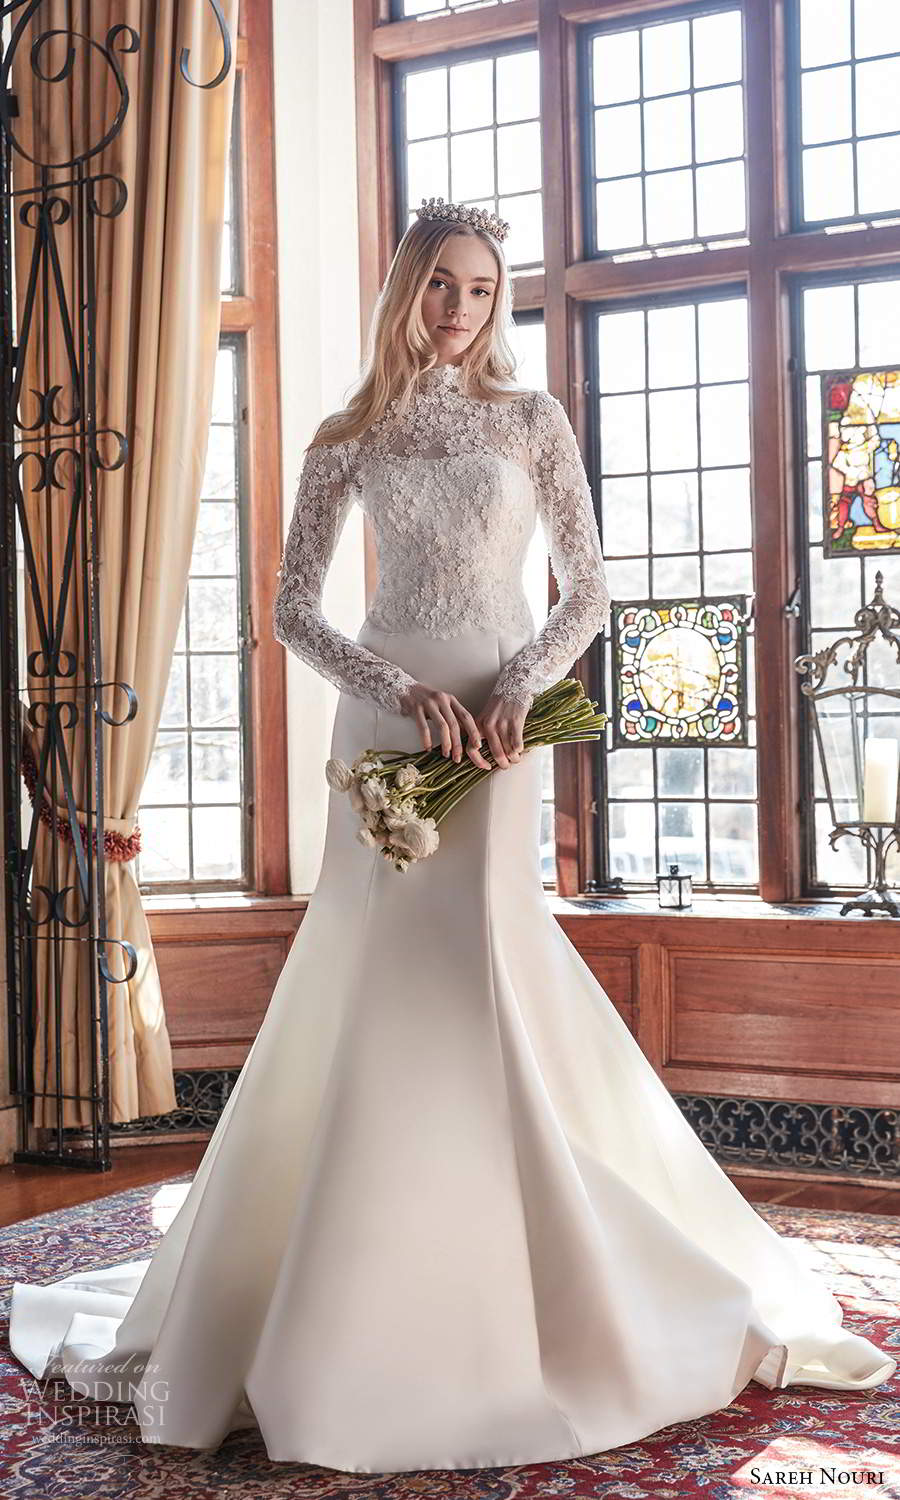 sareh nouri spring 2022 bridal sheer long sleeves high neckline embellished lace bodice clean skirt fit flare mermaid wedding dress chapel train (3) mv